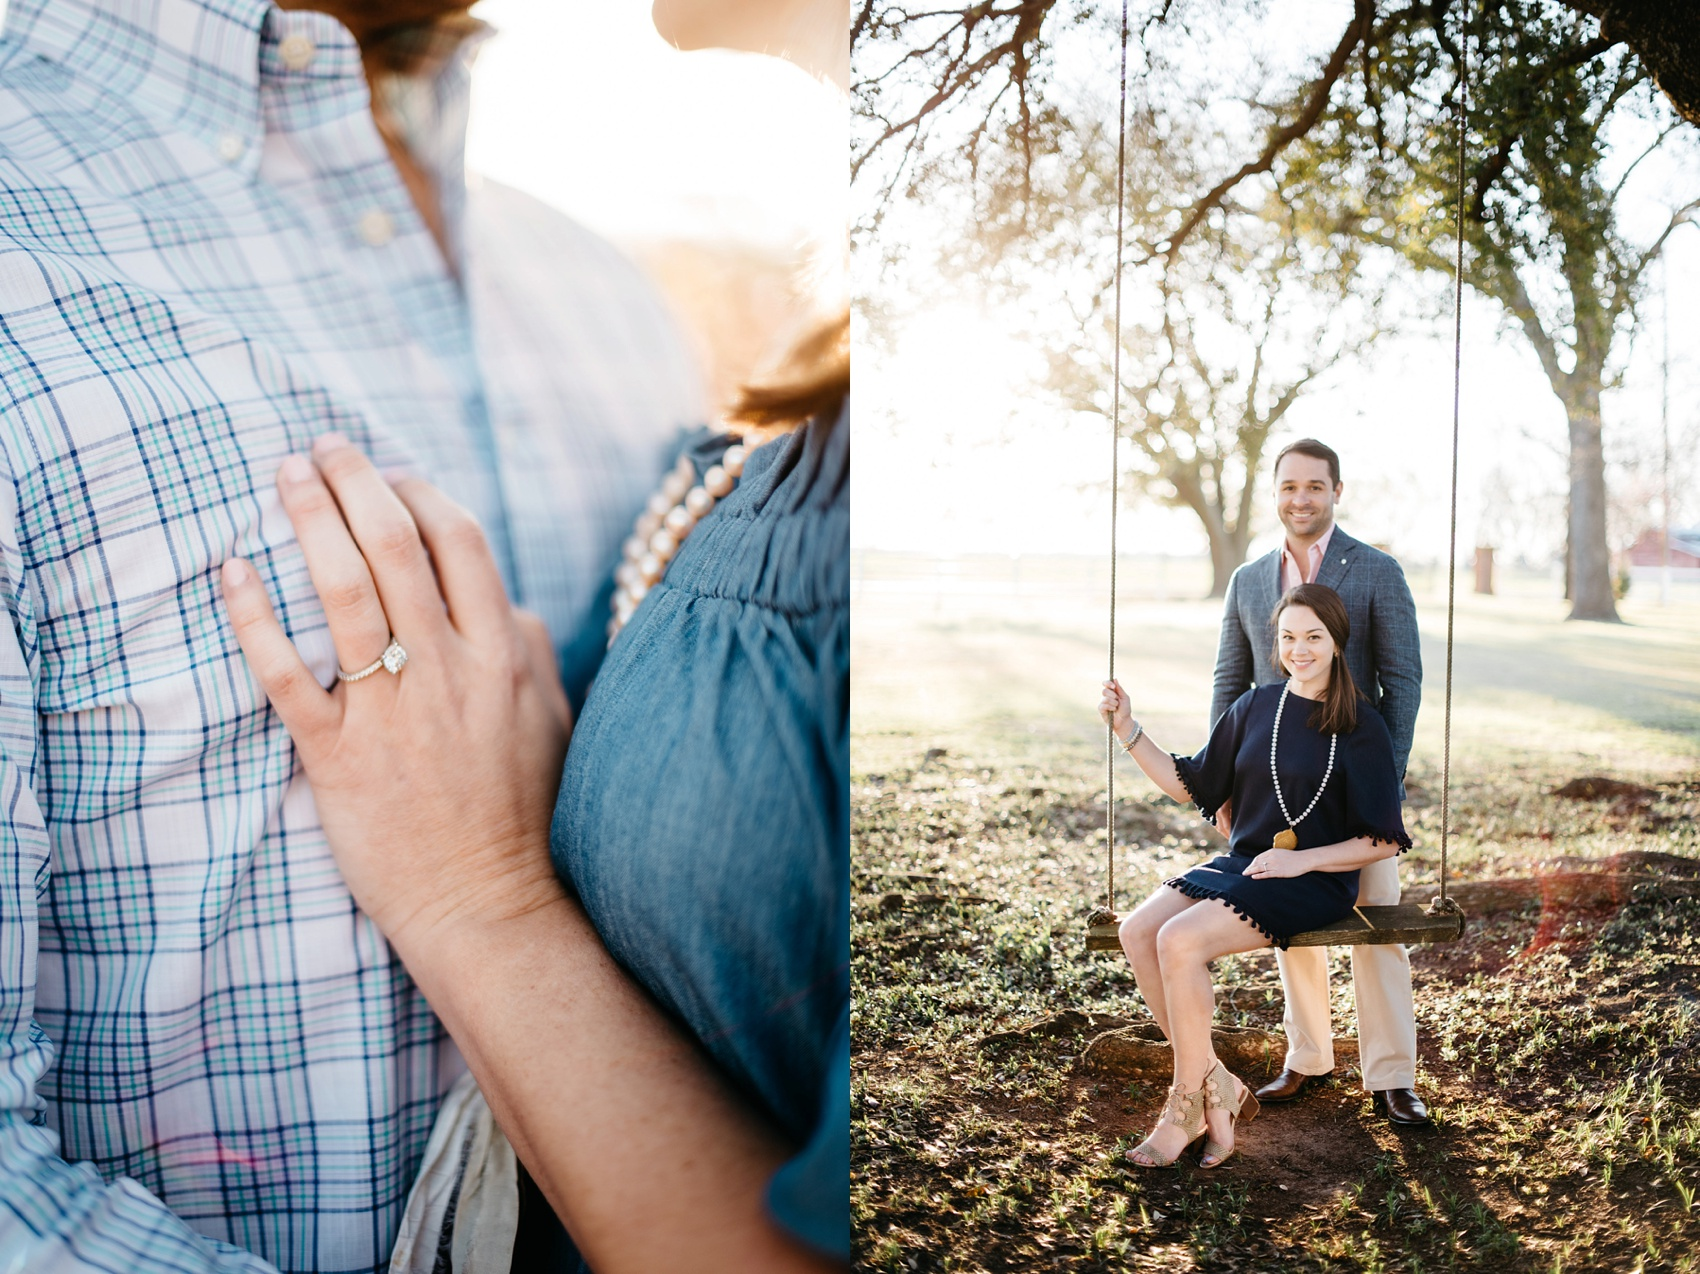 peachtree_engagement_session_1849.jpg